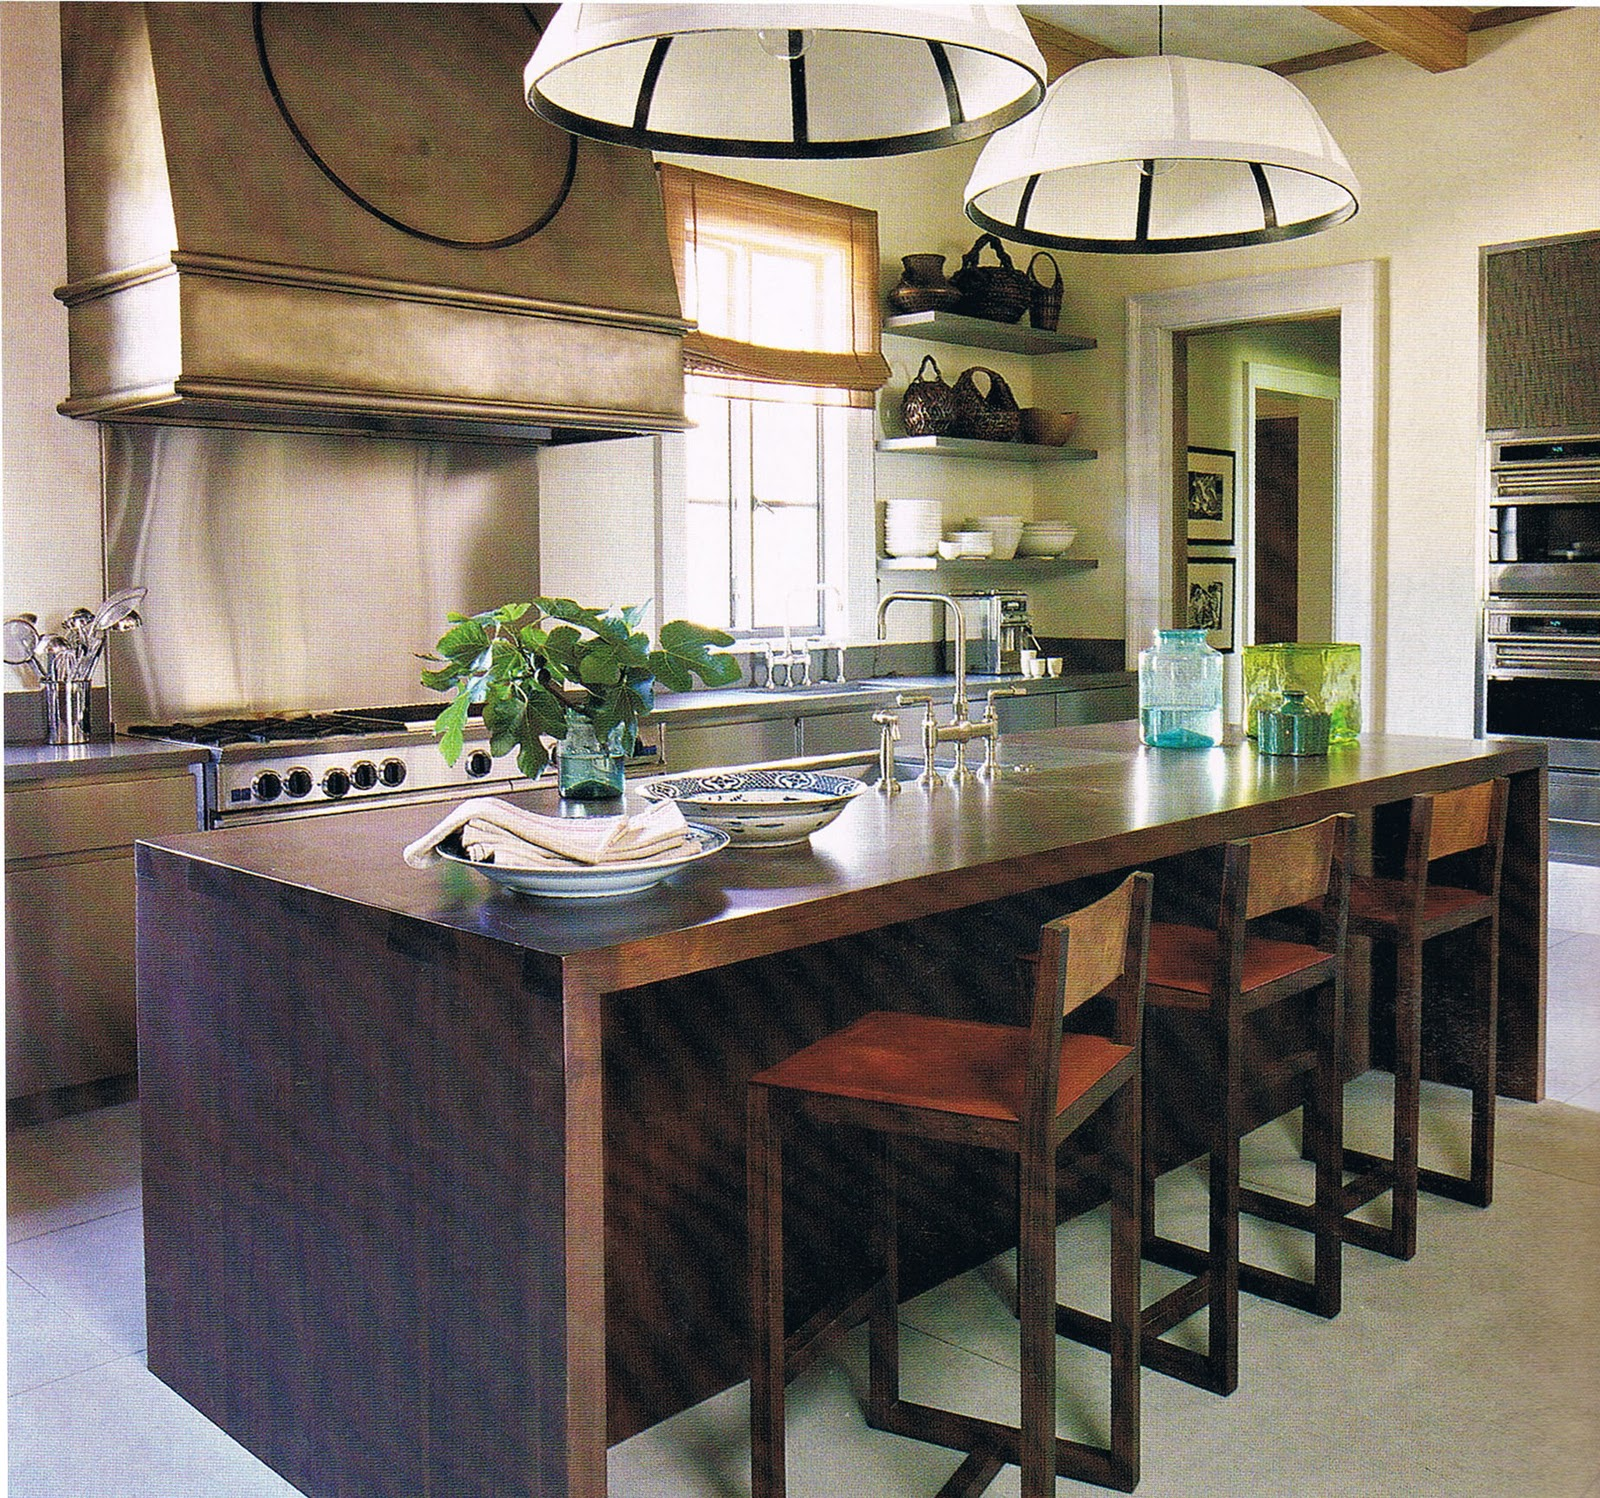 counter stools for kitchen island kitchen islands with stools Counter stools for kitchen island Photo 8